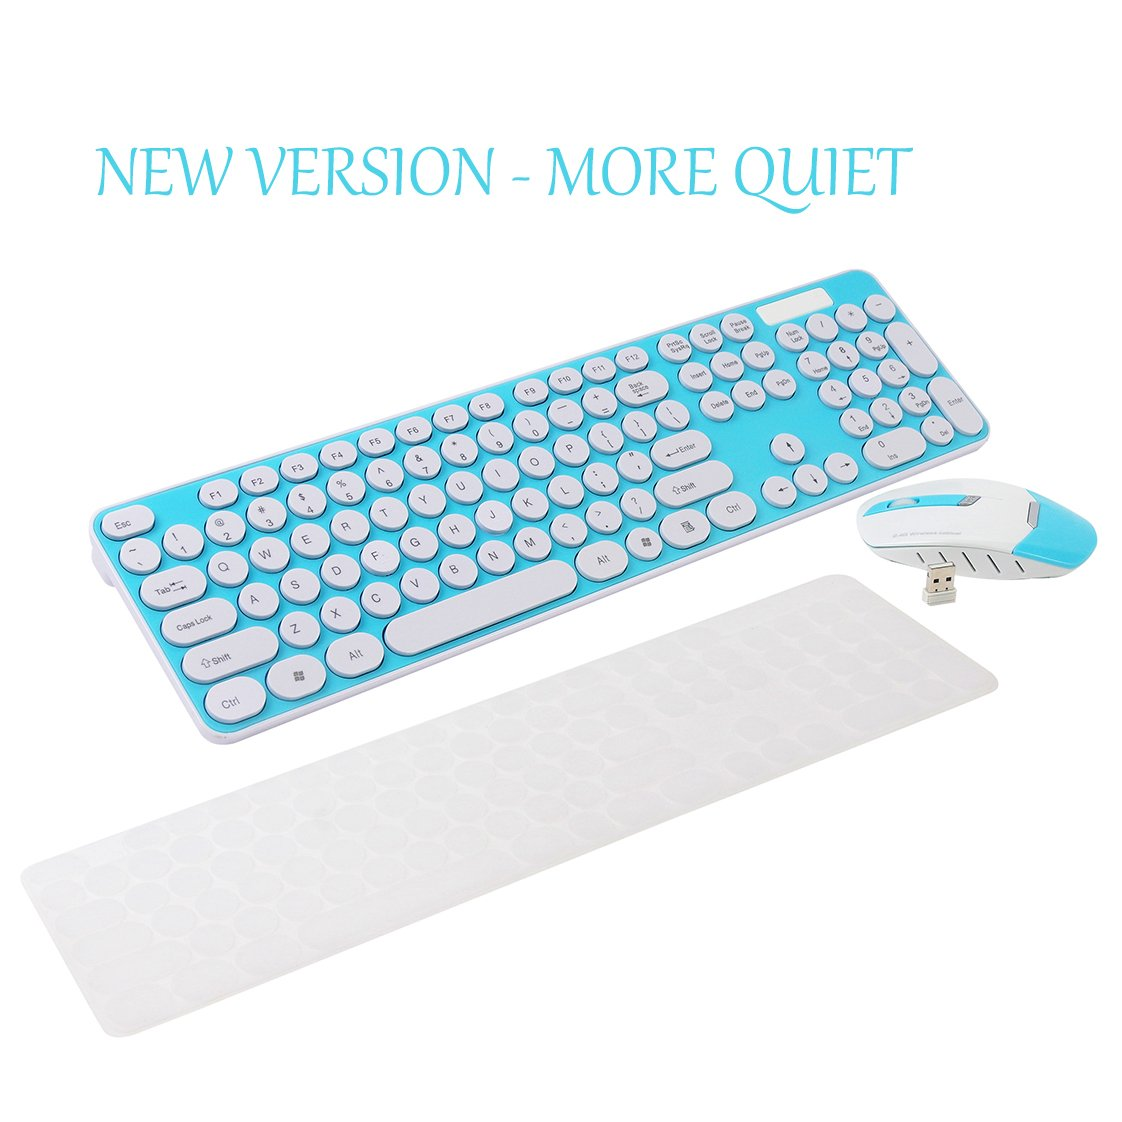 Wireless Keyboard and Mouse Combo, 2.4GHz Cordless Cute Round Key Set Smart Power-saving Whisper-Quiet Slim Combo for Laptop, Computer,TV and Mac (Blue)